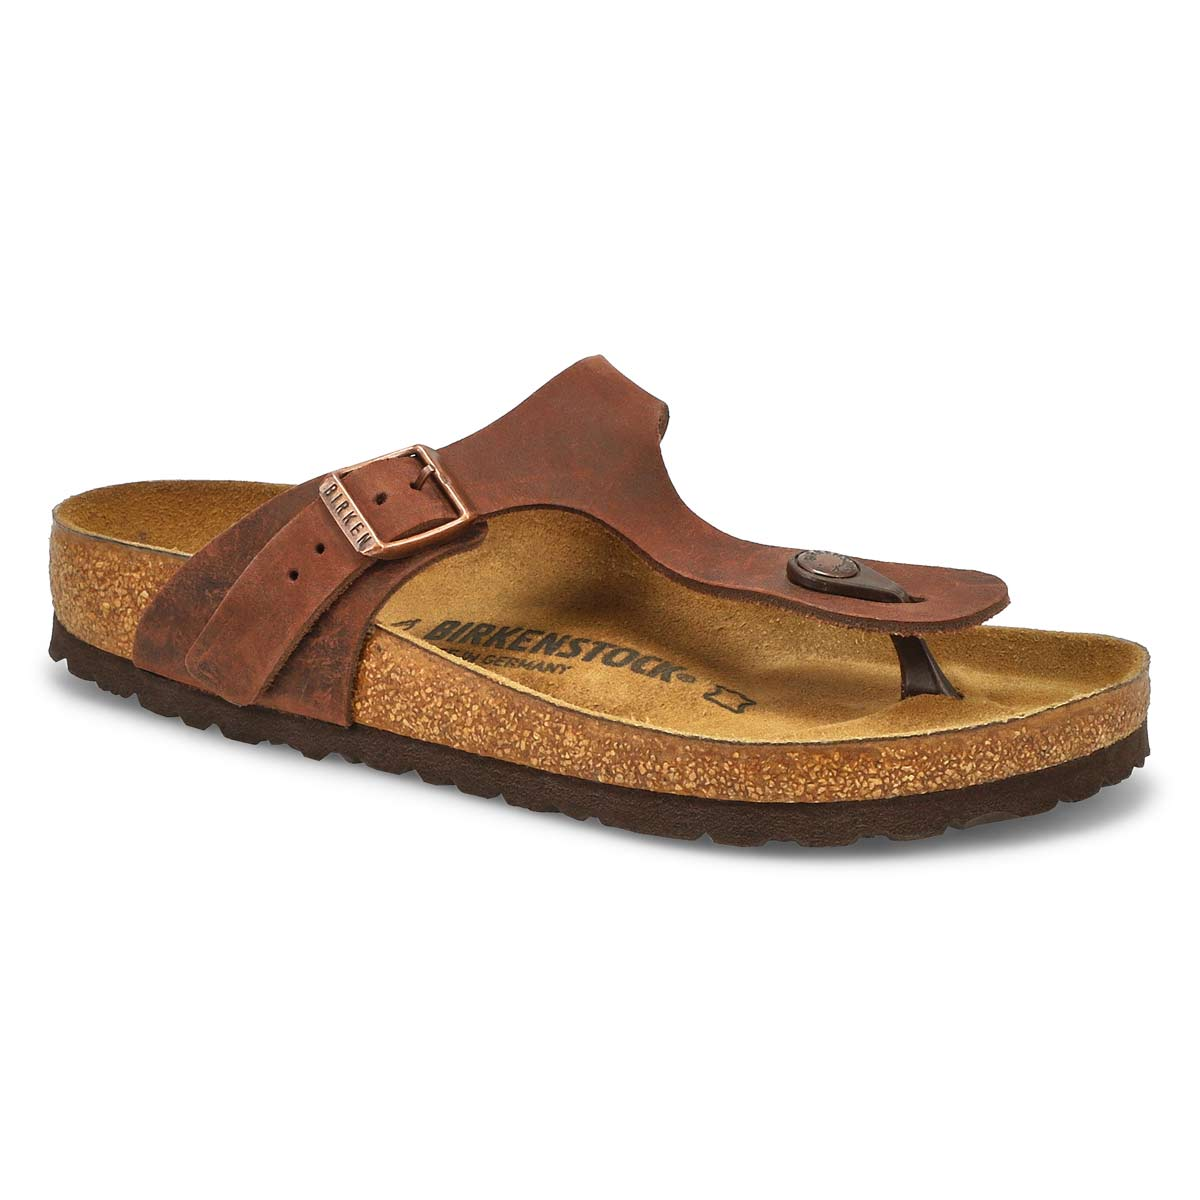 Women's GIZEH havana leather thong sandals